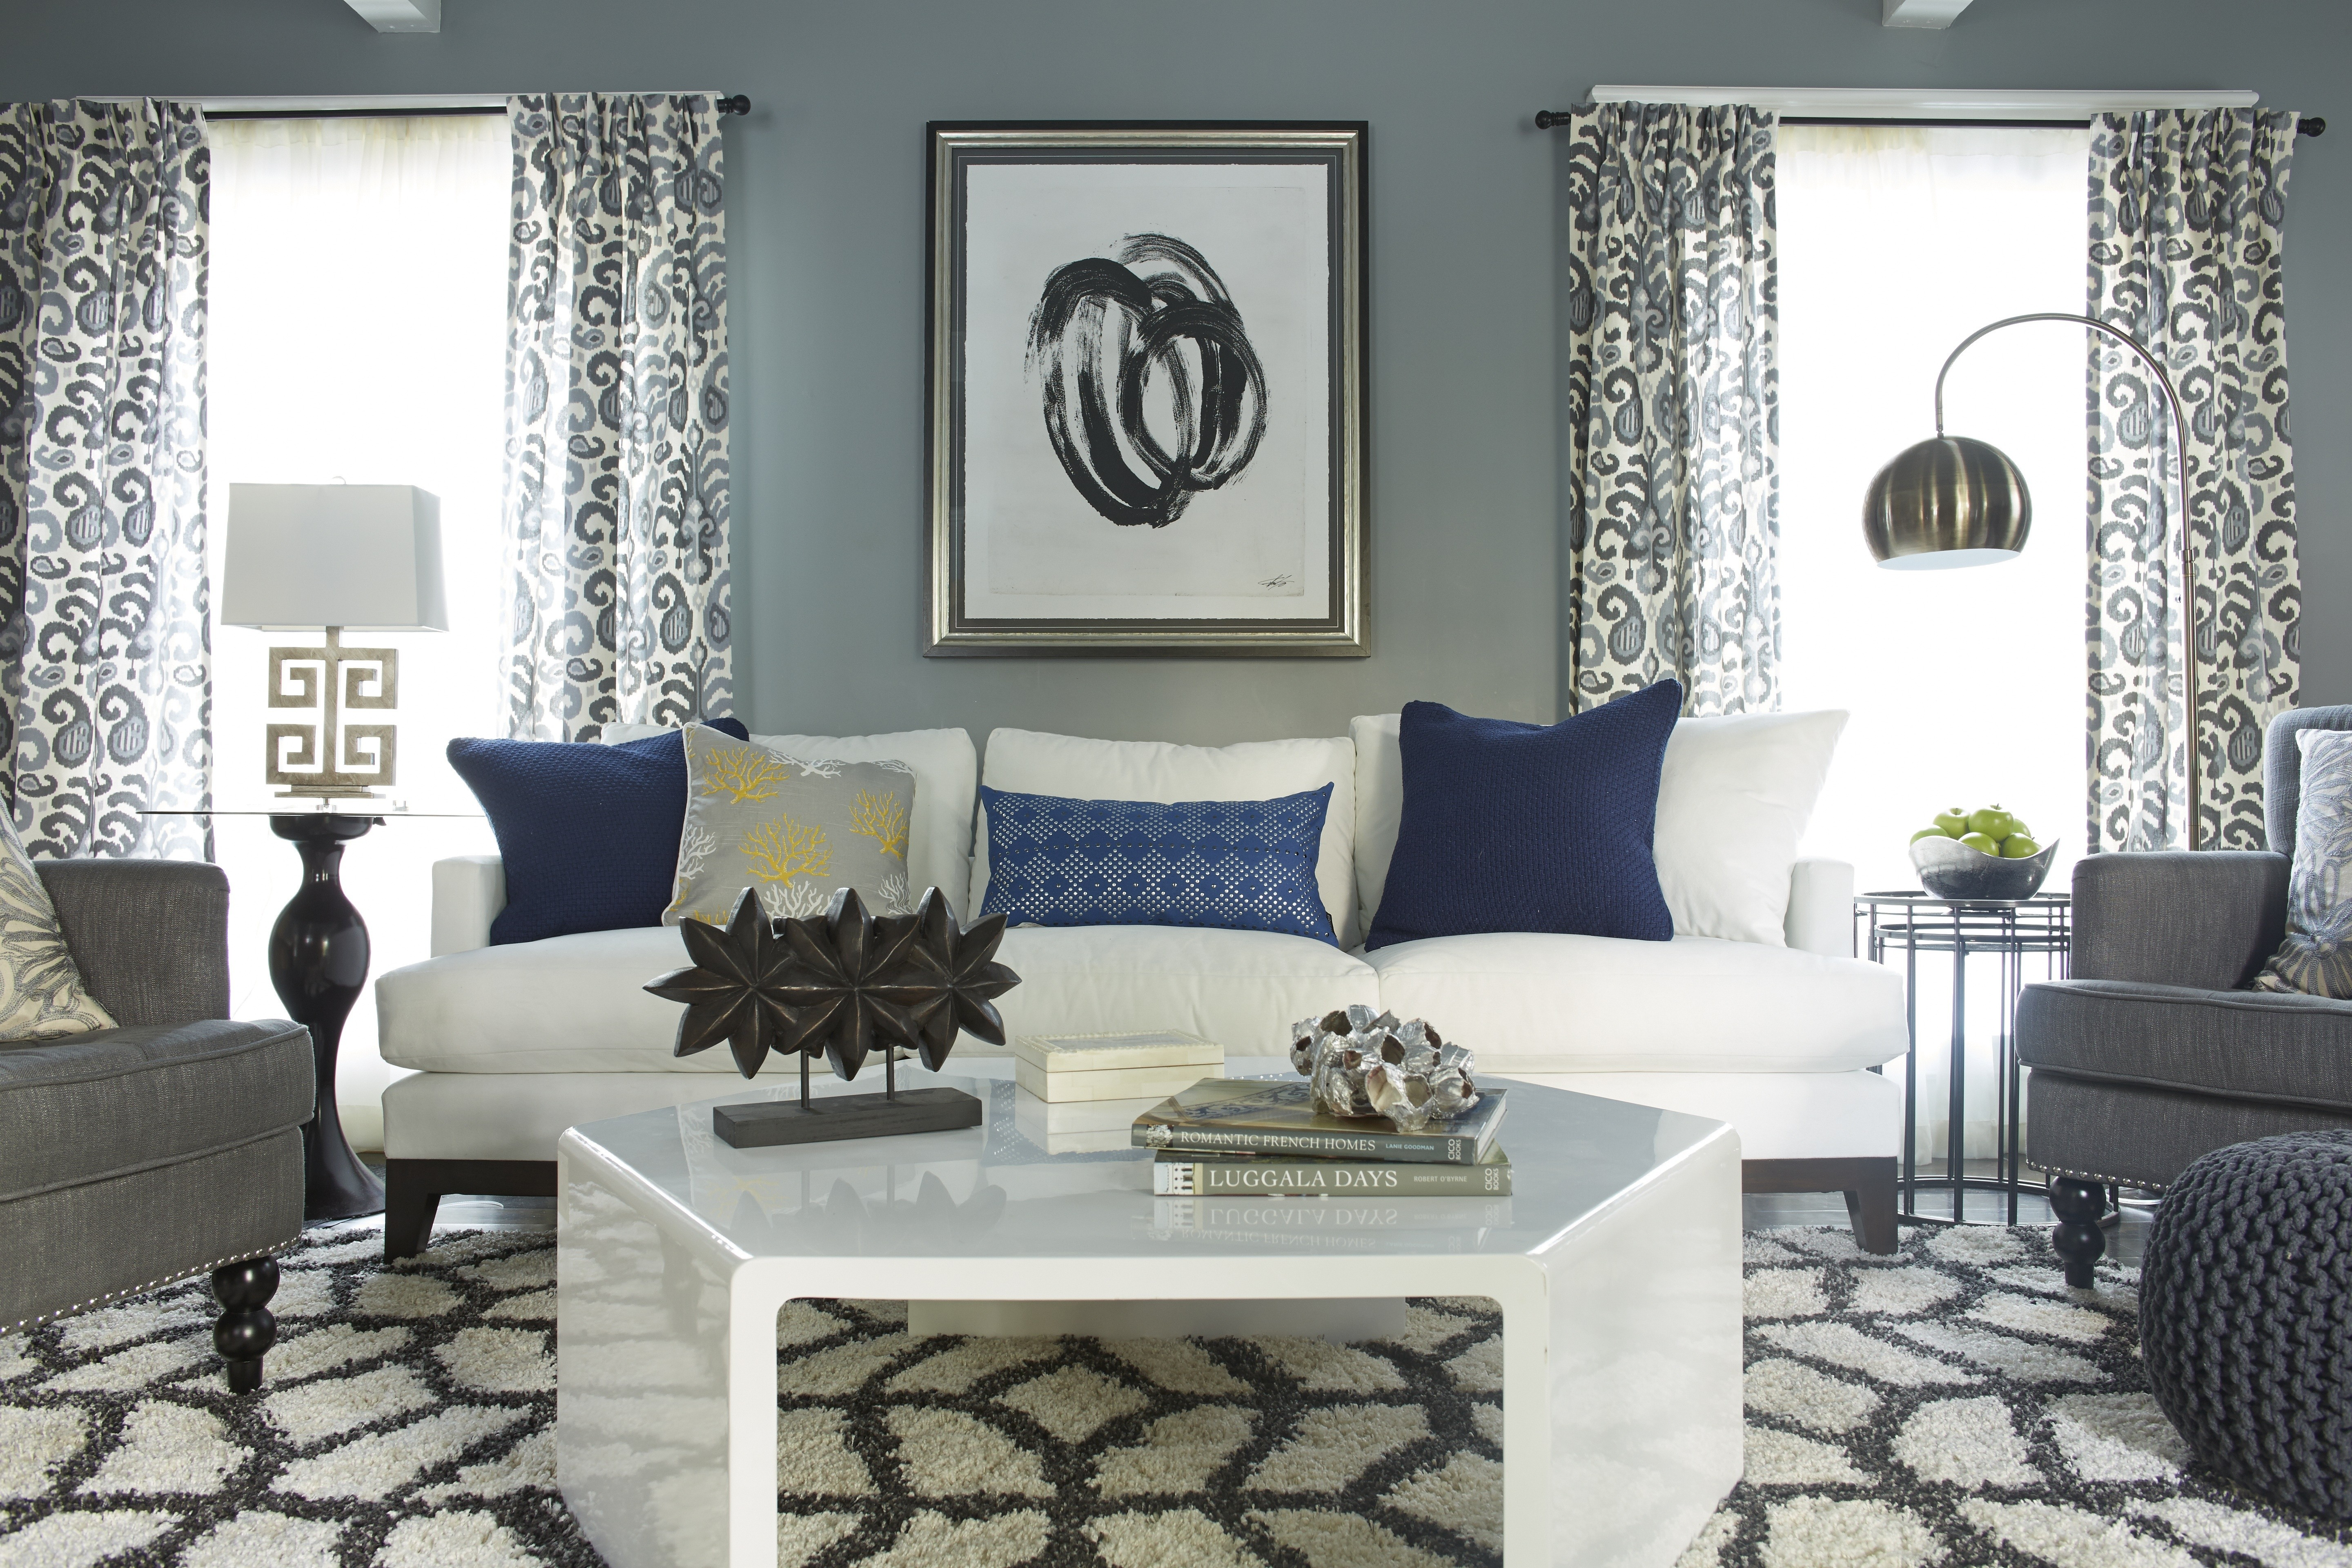 Luxury Decorating Your Living Room On A Budget